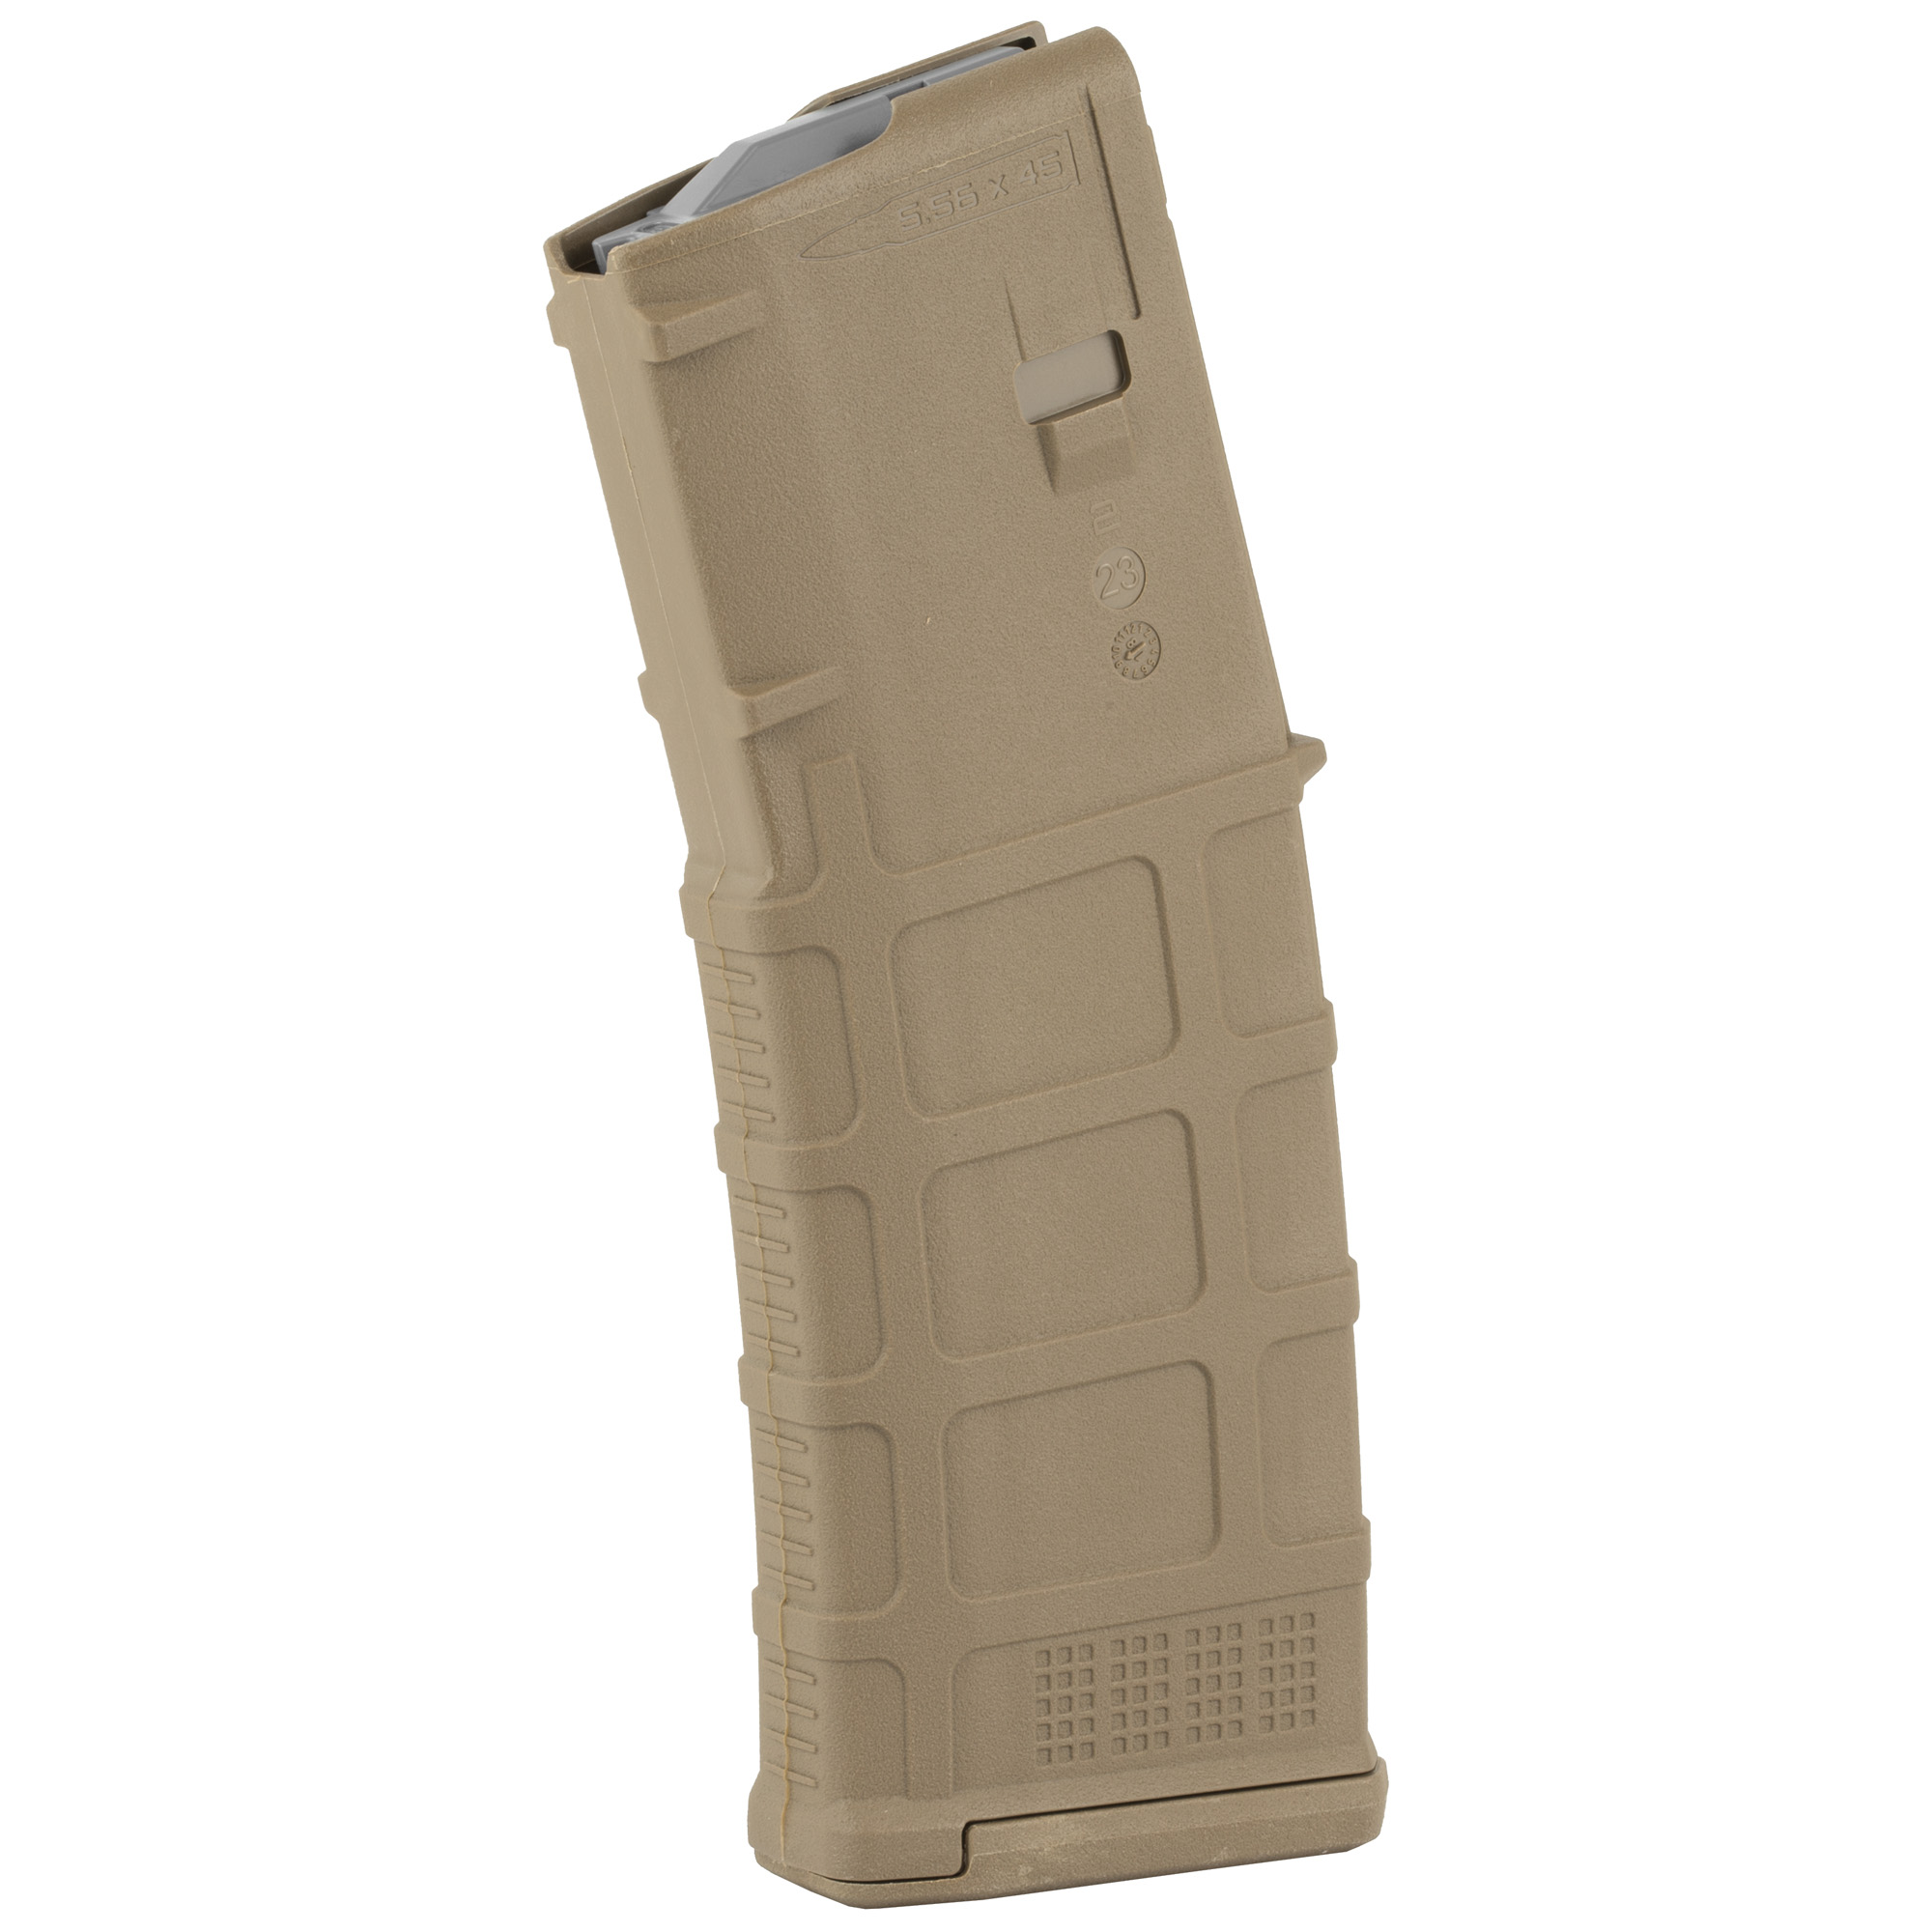 """The next-generation PMAG 30 GEN M3 is a 30-round 5.56x45 NATO (.223 Remington) polymer magazine for AR15/M4 compatible weapons. Along with expanded feature set and compatibility"""" the GEN M3 incorporates new material technology and manufacturing processes for enhanced strength"""" durability"""" and reliability to exceed rigorous military performance specifications. While the GEN M3 is optimized for Colt-spec AR15/M4 platforms"""" modified internal and external geometry also permits operation with a range of additional weapons such as the HK(R) 416/MR556A1/M27 IAR"""" British SA-80"""" FN(R) SCAR(TM) MK 16/16S"""" and others"""